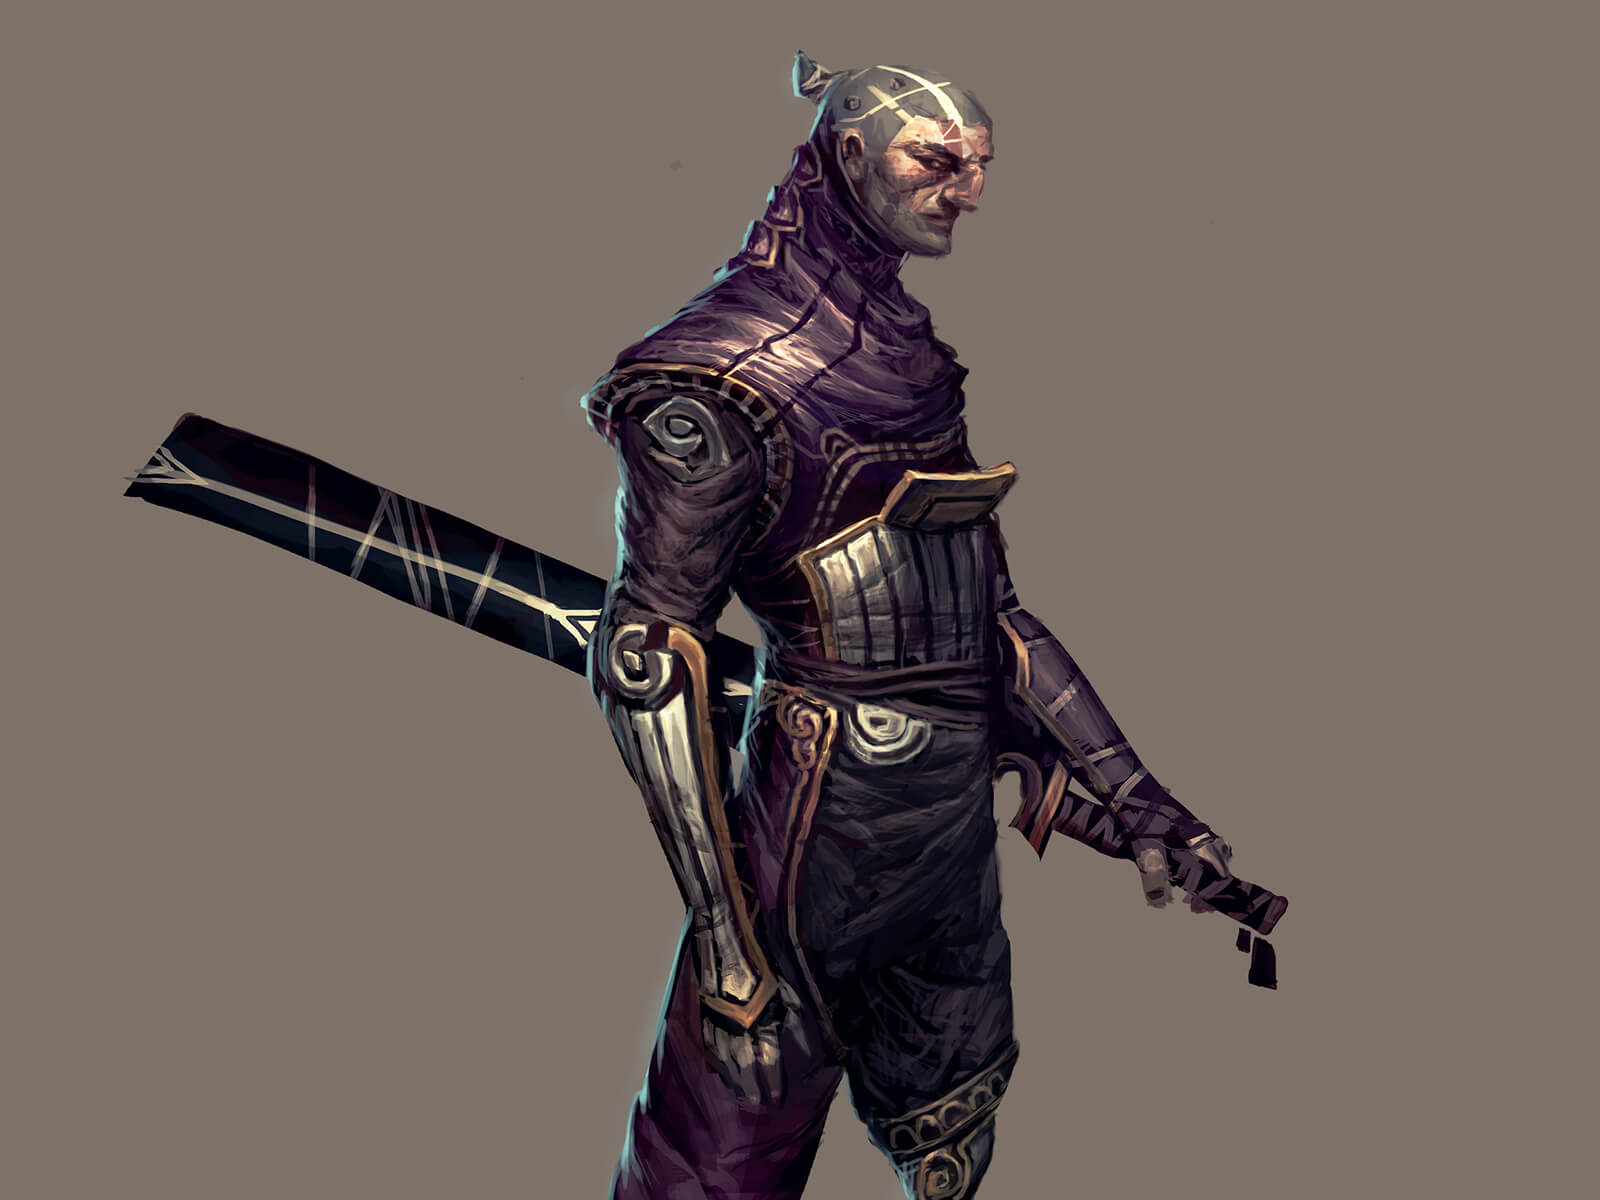 A stern warrior in an ornate, purple and silver uniform seen from the side with a sheathed sword at his hip.